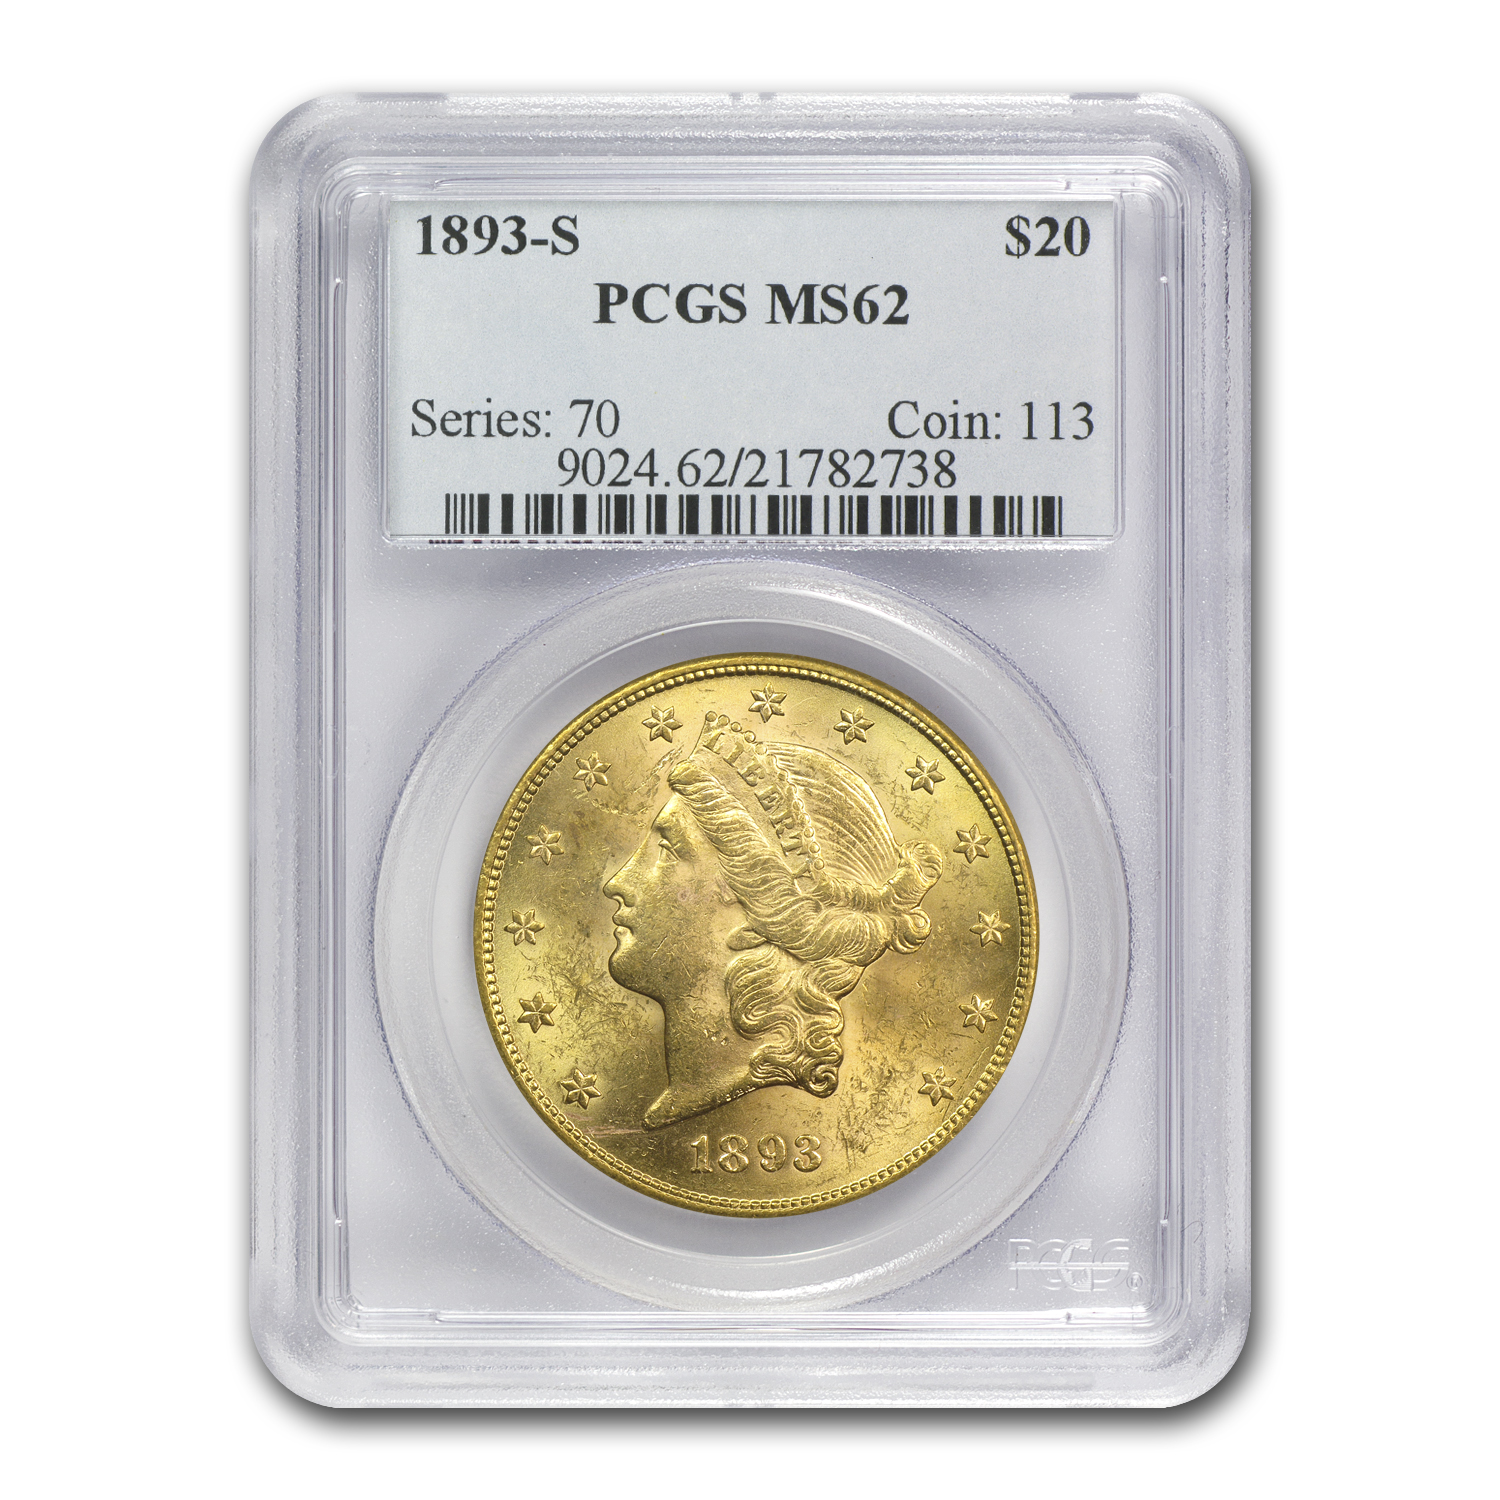 $20 Gold Liberty Double Eagle Date Set (1800's S-Mint) MS-62 PCGS